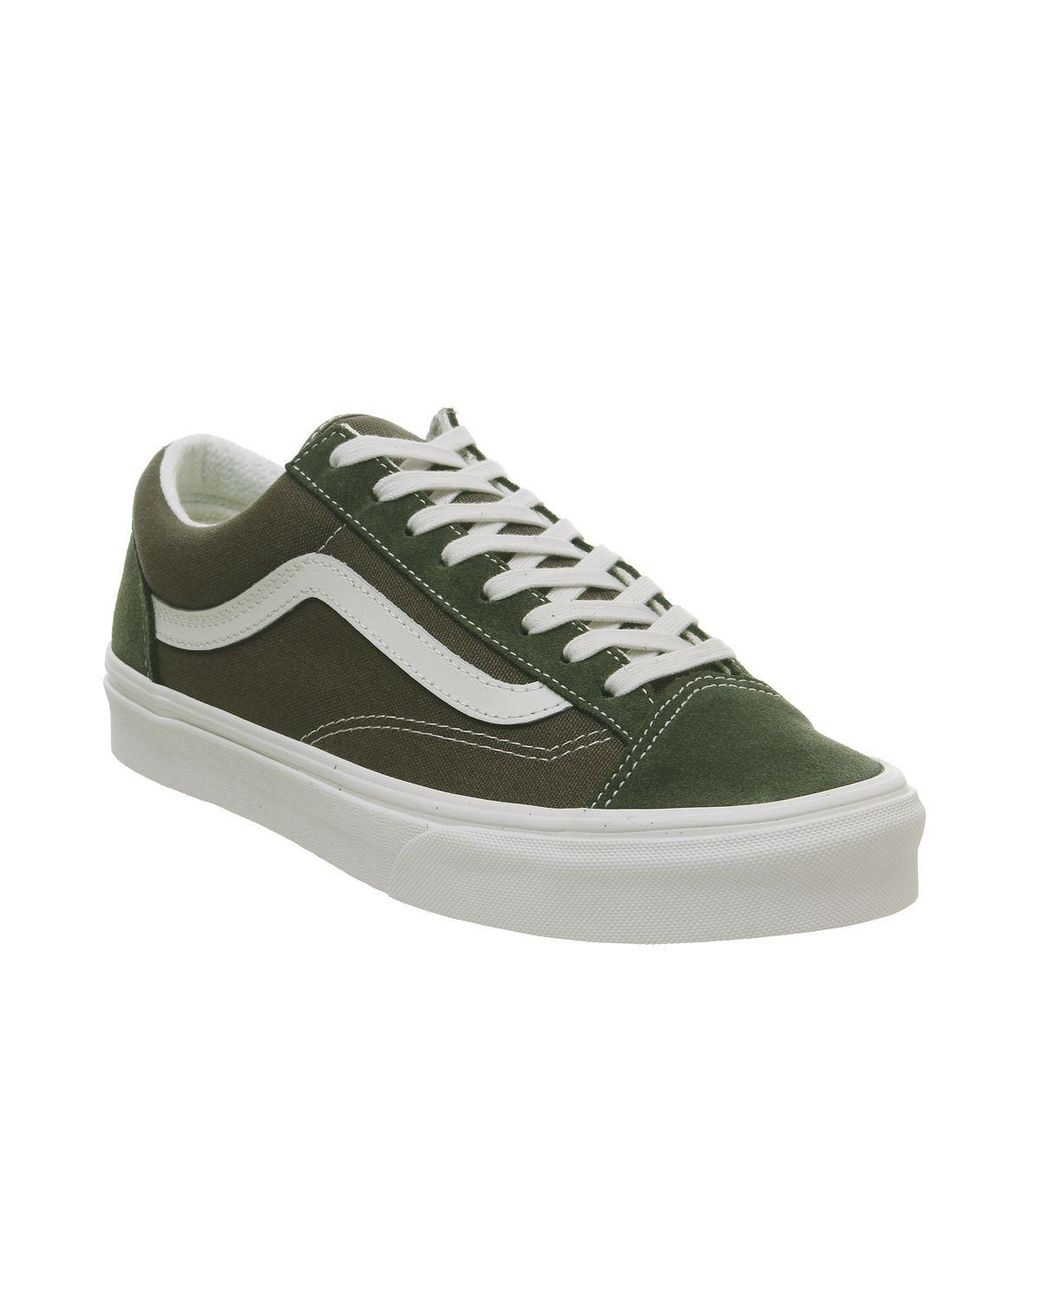 92b8f6fa12ca41 Lyst - Vans Style 36 Trainers in Green for Men